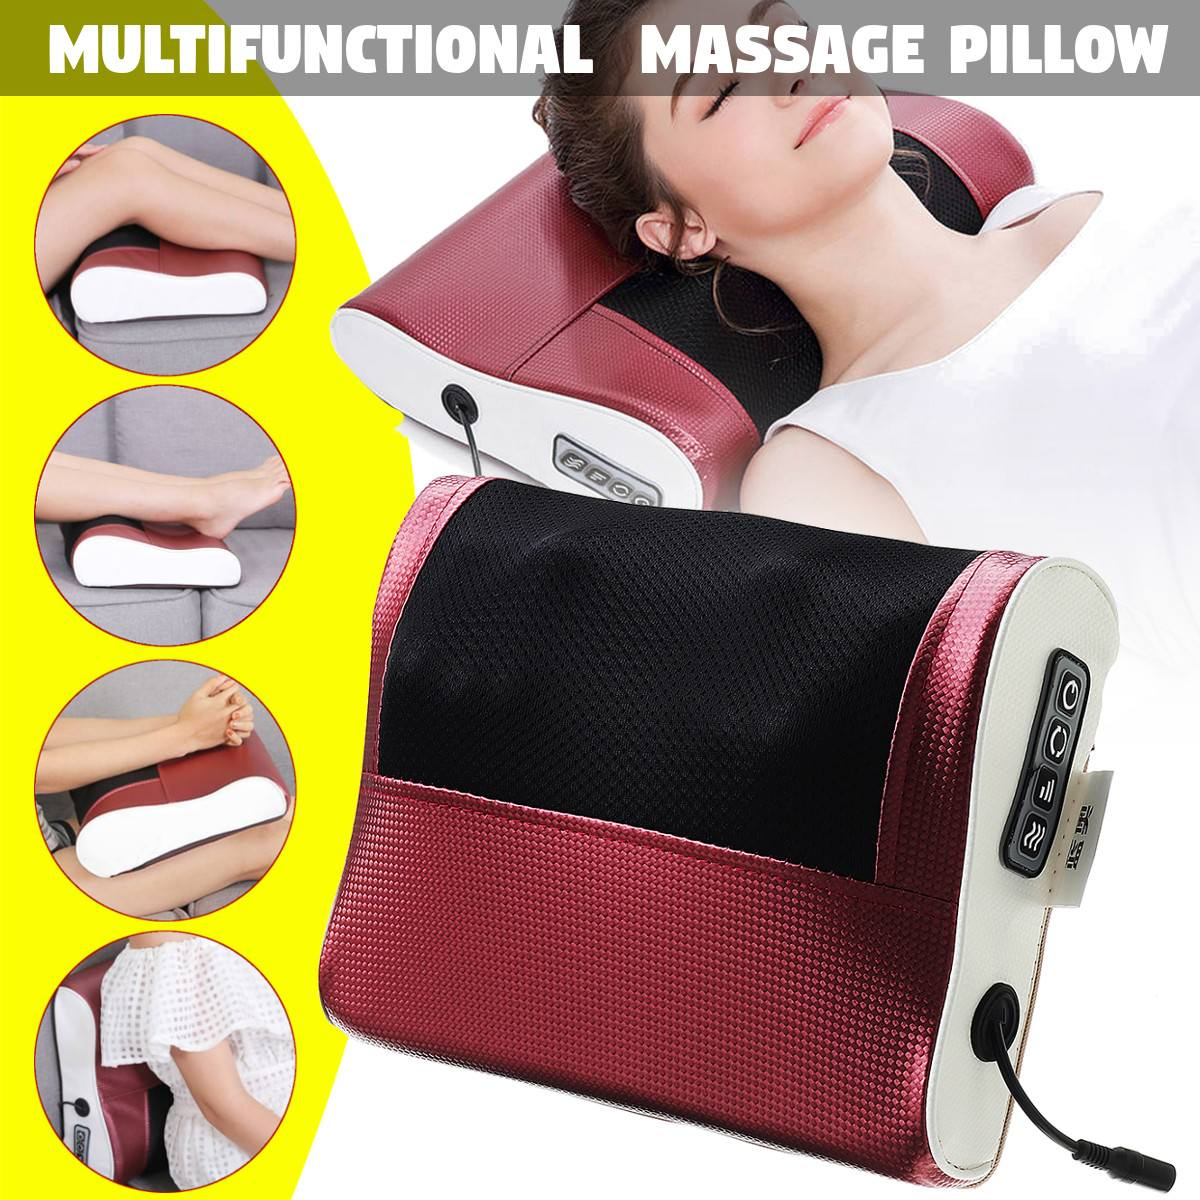 New Infrared Heating Neck Shoulder Back Body Electric Massage Pillow Shiatsu Massager Device Cervical Healthy Relaxation 2019